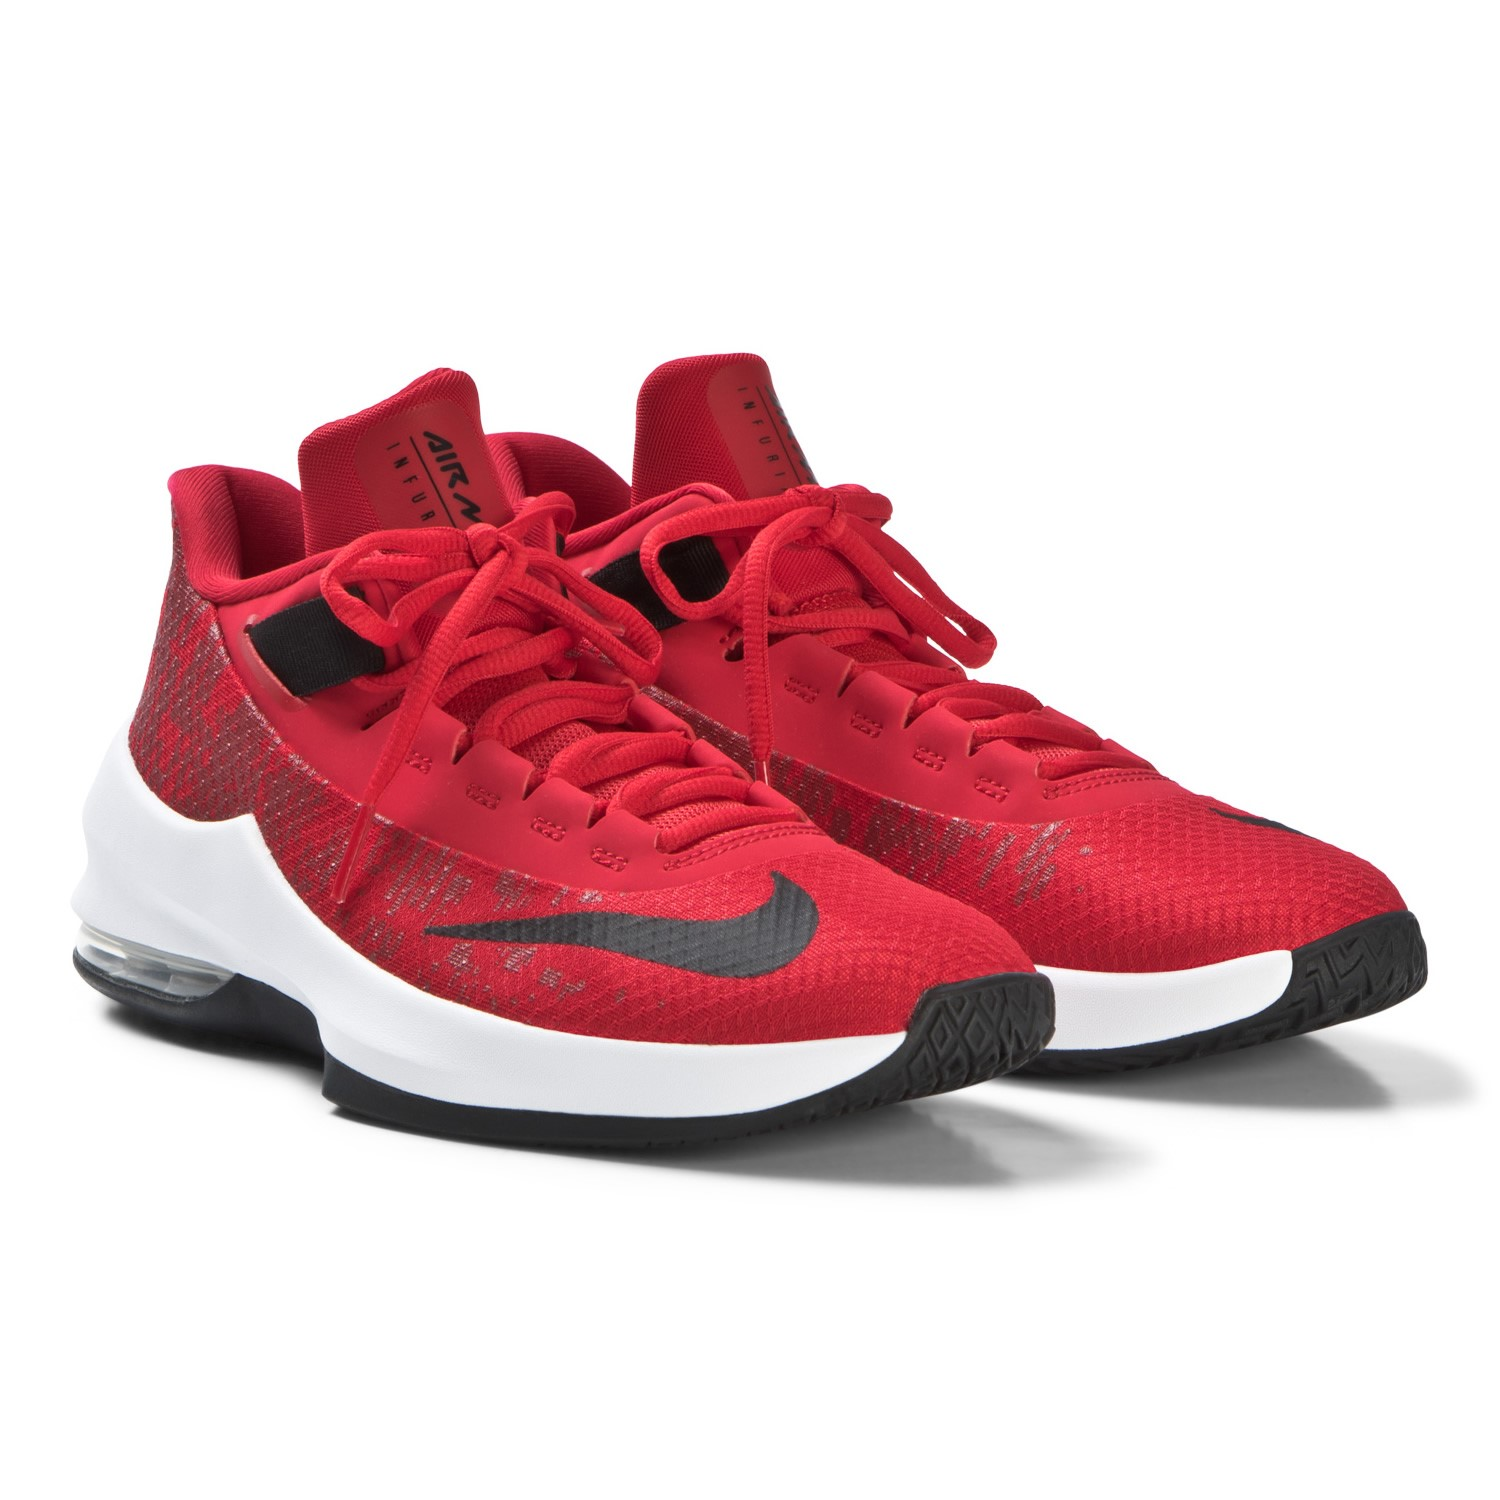 2d7185458a Nike Air Max Infuriate II GS - Kids Basketball Shoes - University Red/Black/